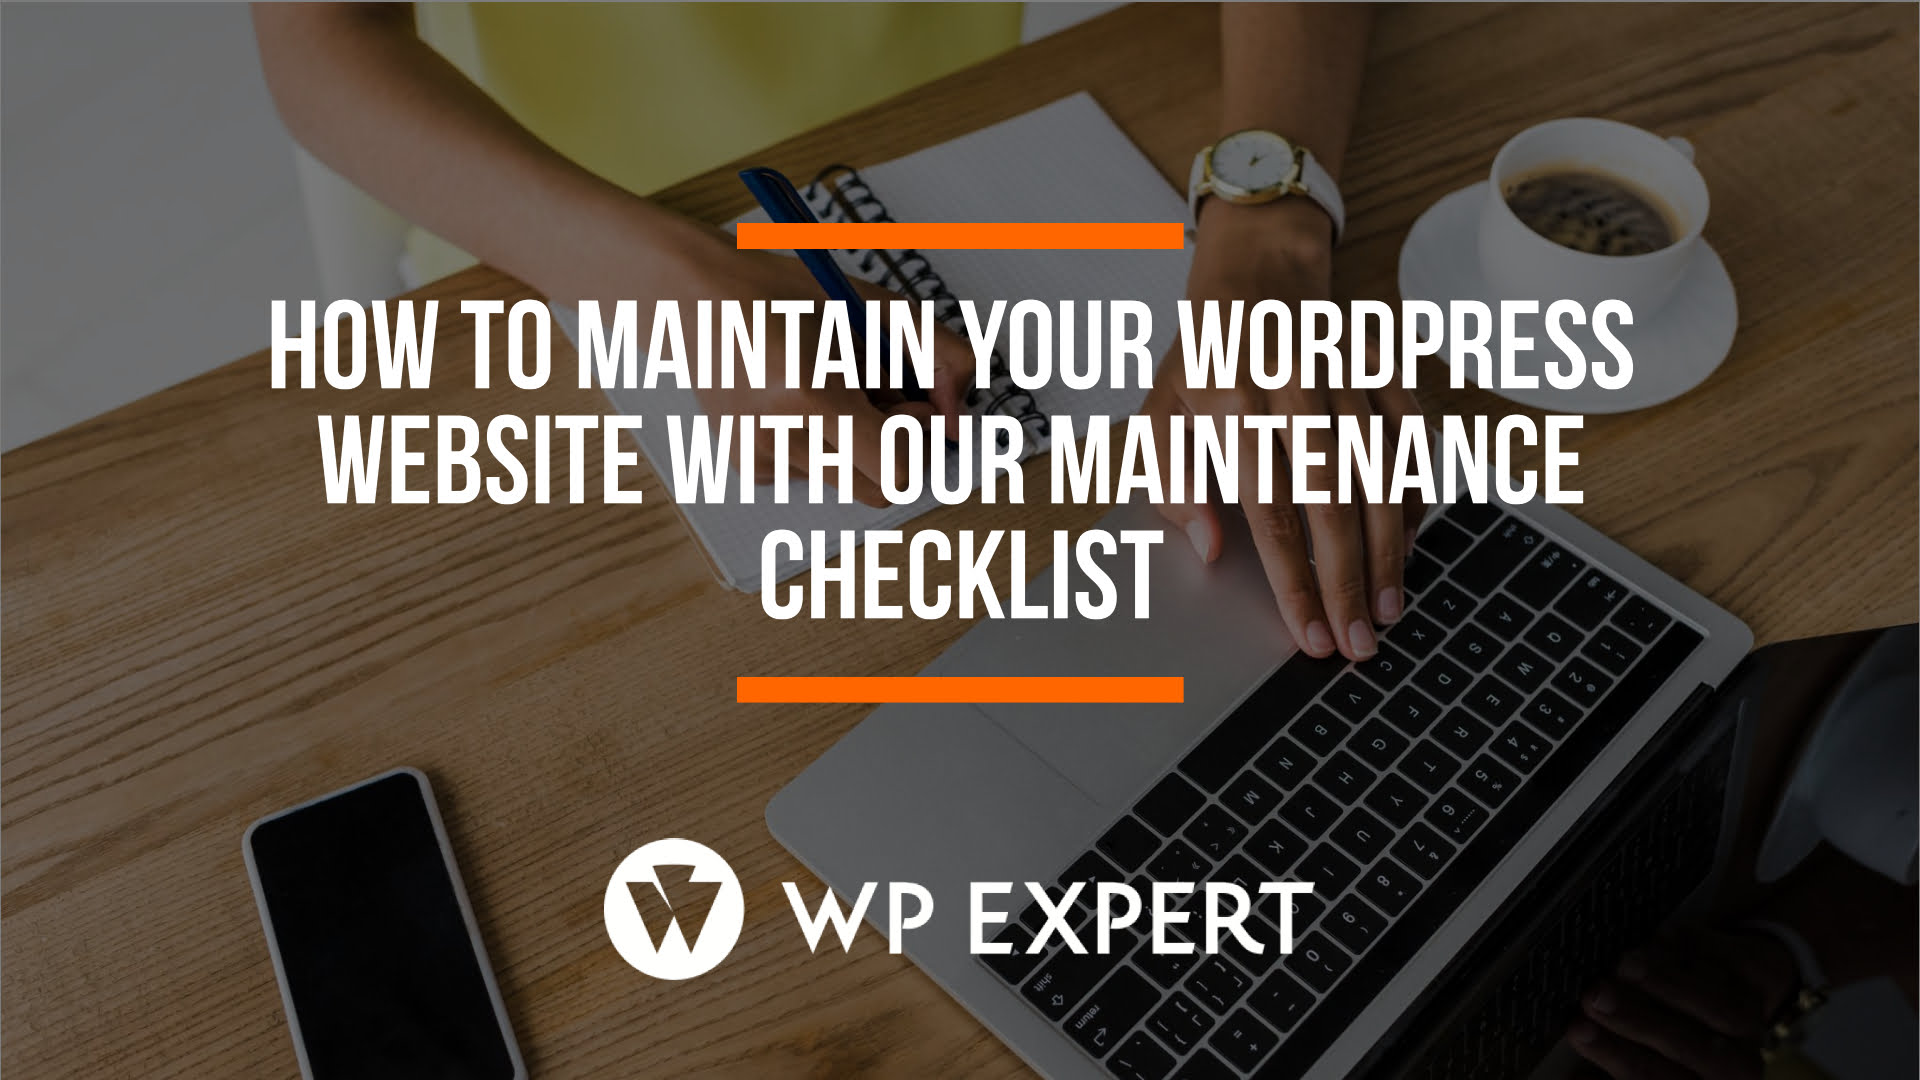 How to maintain your WordPress website with our maintenance checklist